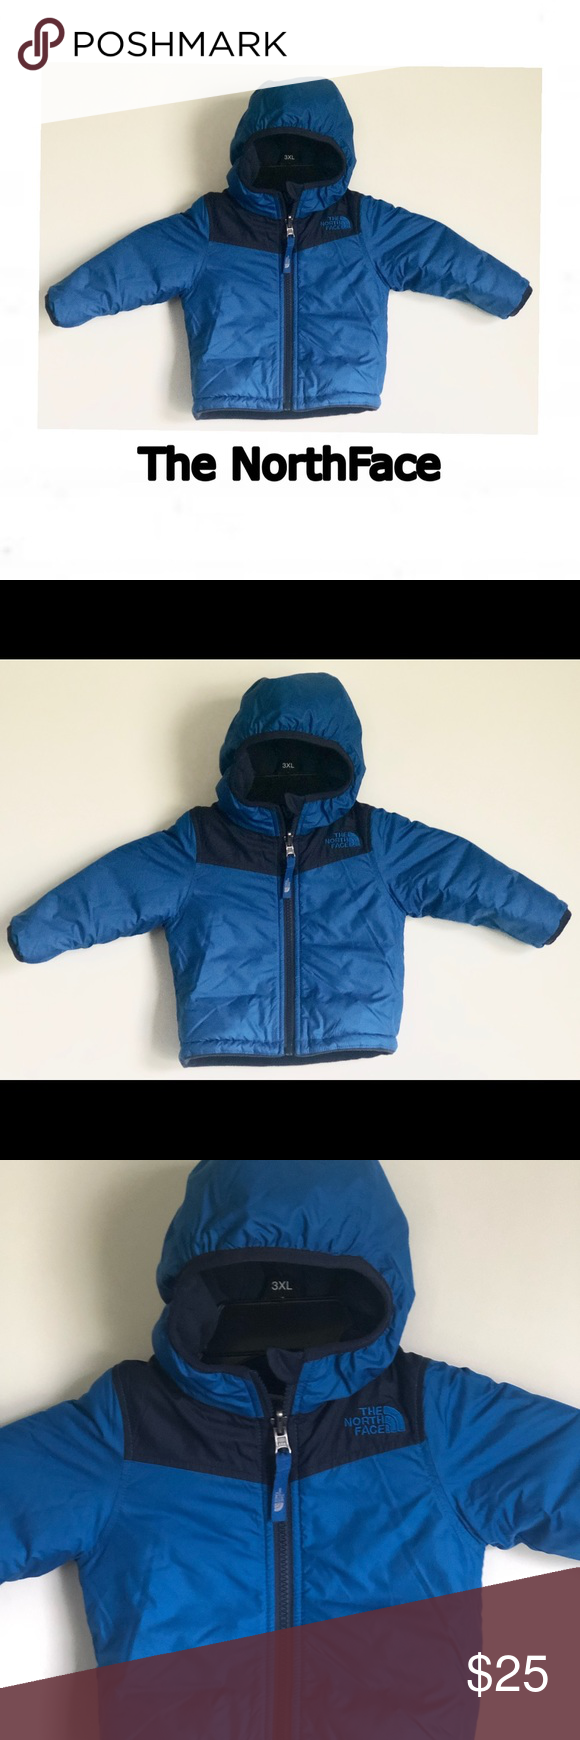 The North Face Jacket For Toddler North Face Jacket The North Face Jackets [ 1740 x 580 Pixel ]